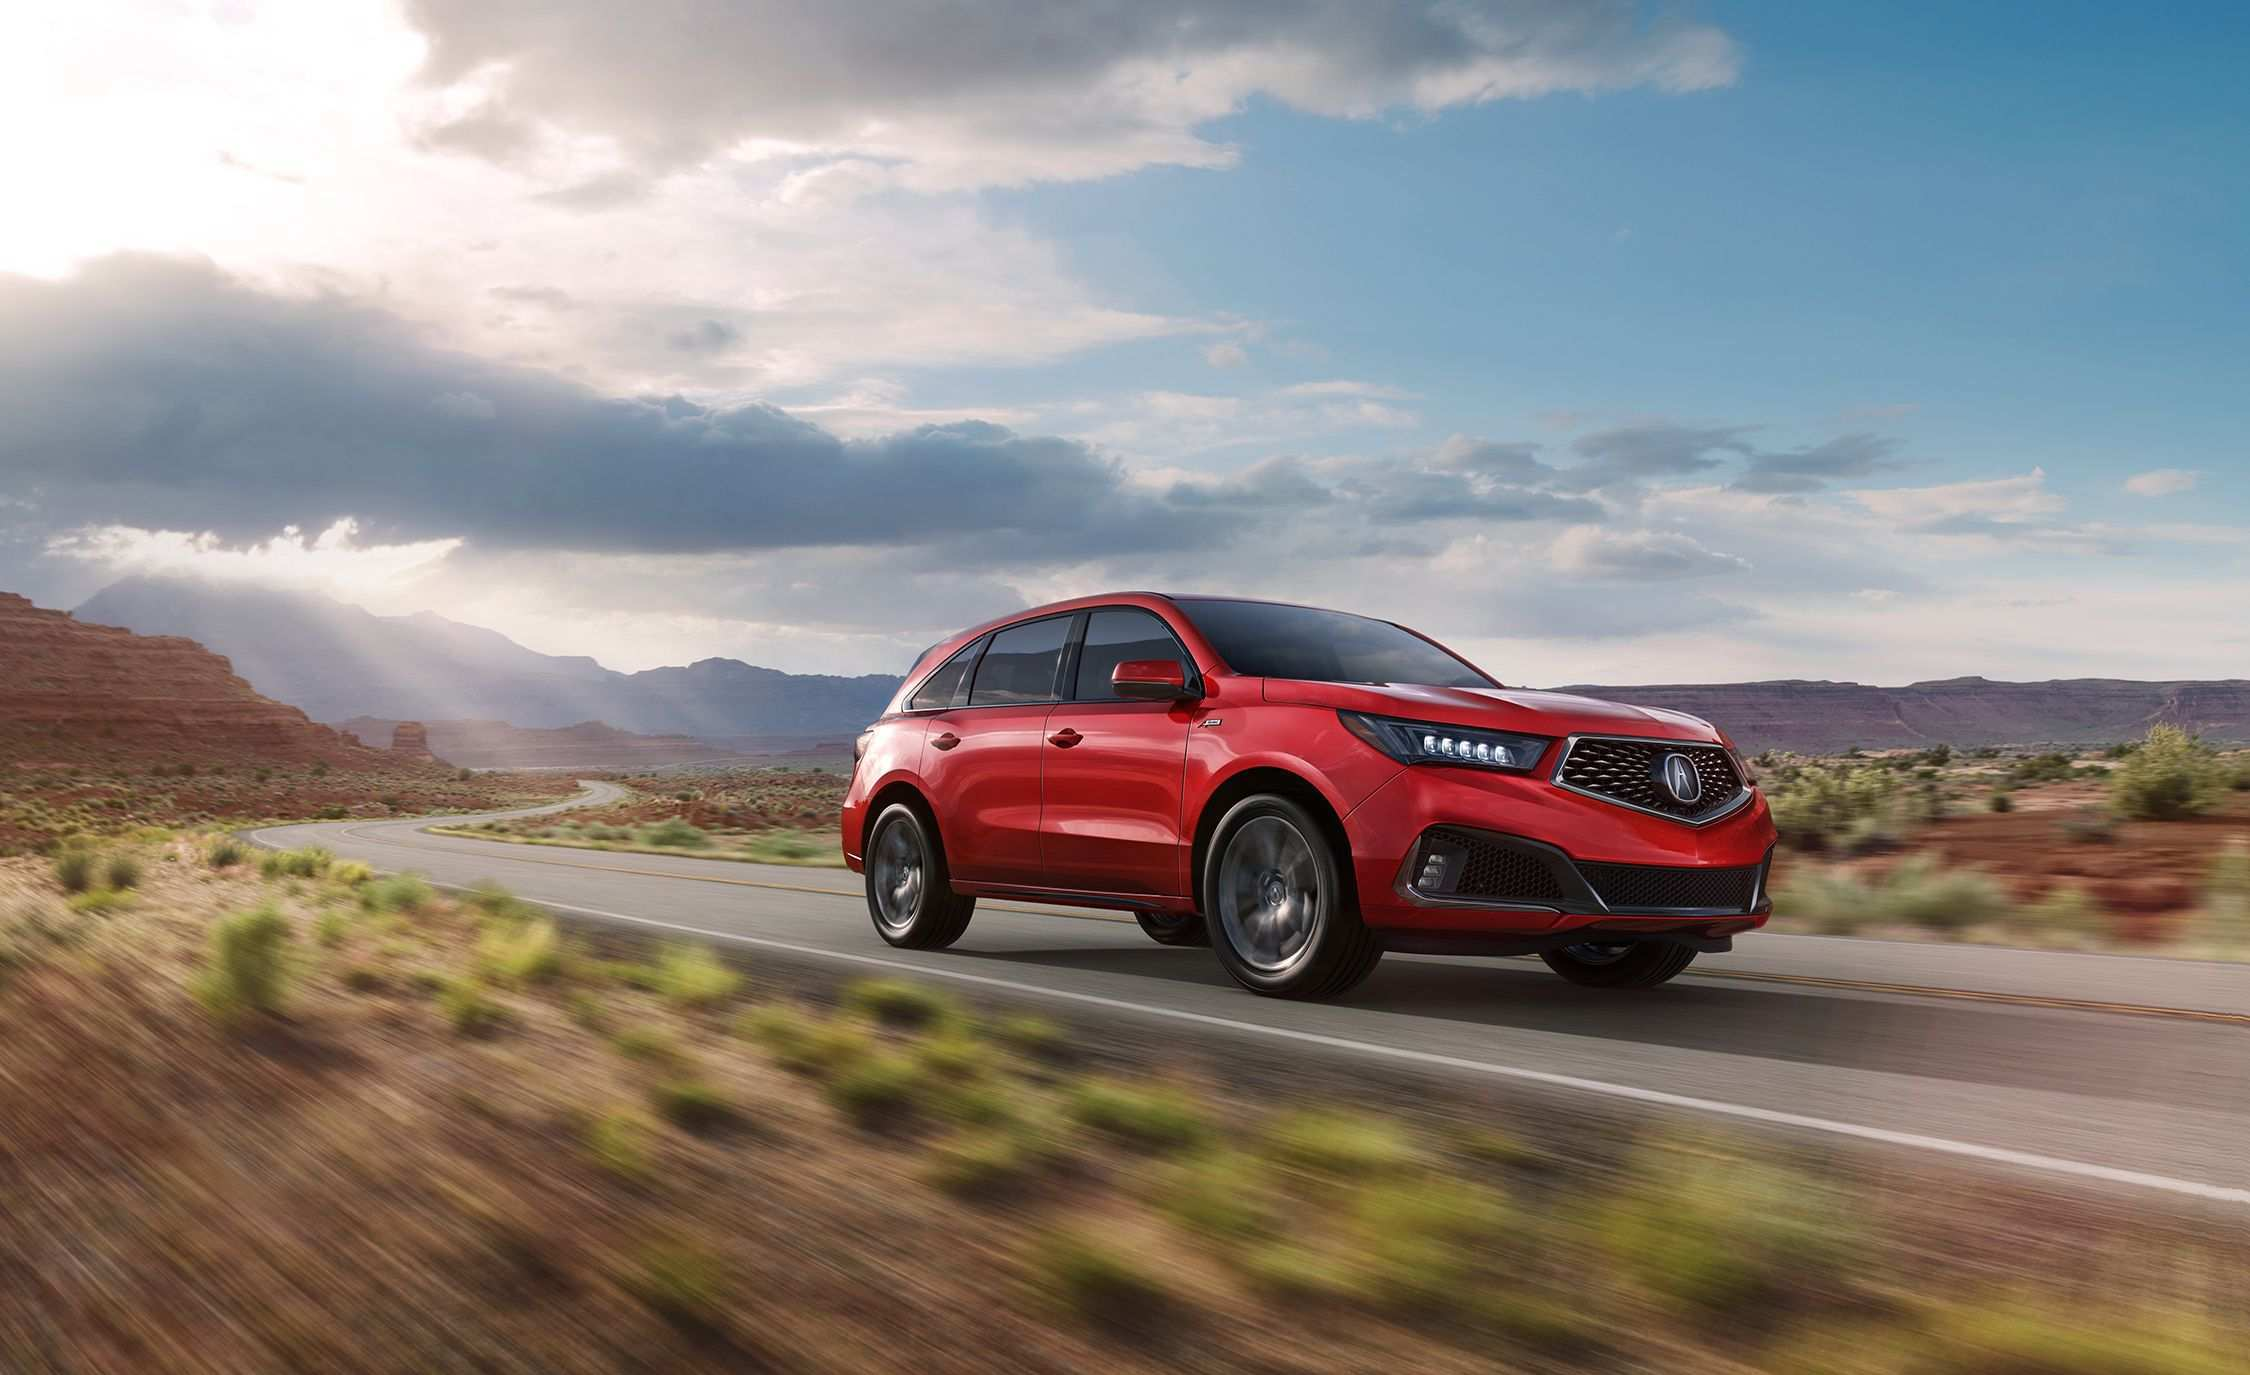 40 All New The New Acura Mdx 2019 Release Date And Specs Price for The New Acura Mdx 2019 Release Date And Specs